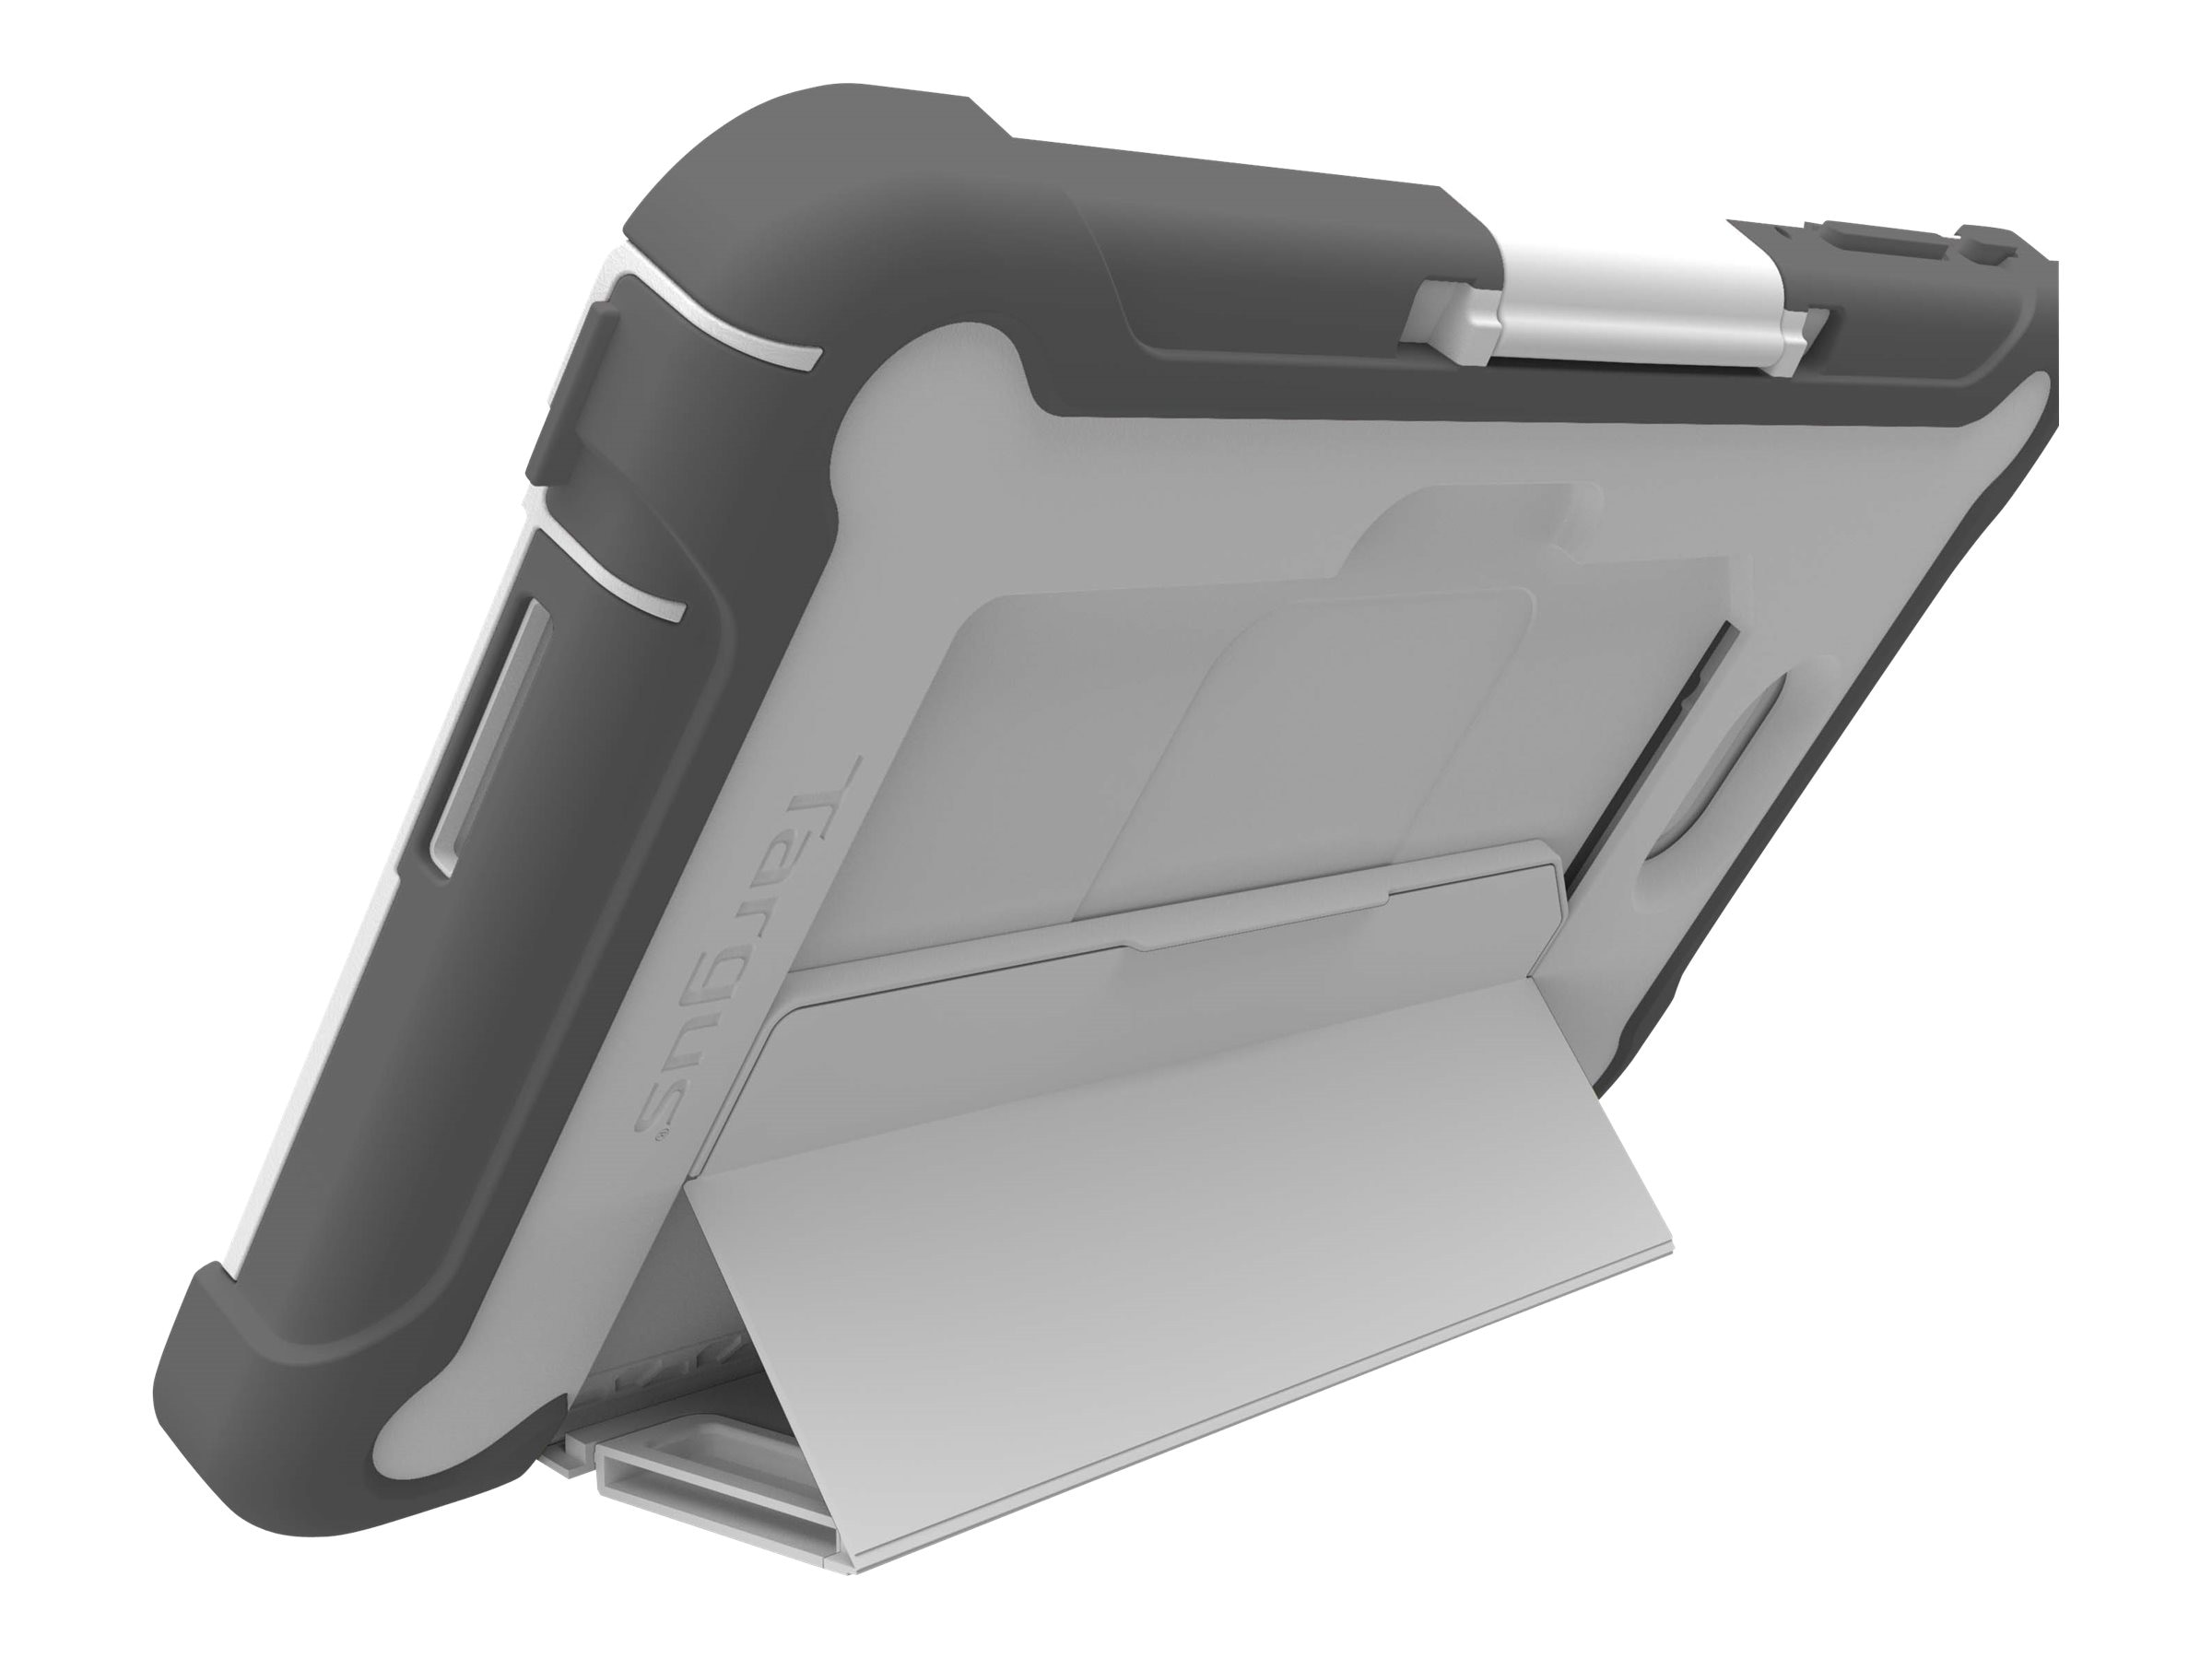 Targus SafePort Rugged Healthcare Case for Venue 8 Pro 5855, THD467USZ, 31842024, Carrying Cases - Tablets & eReaders